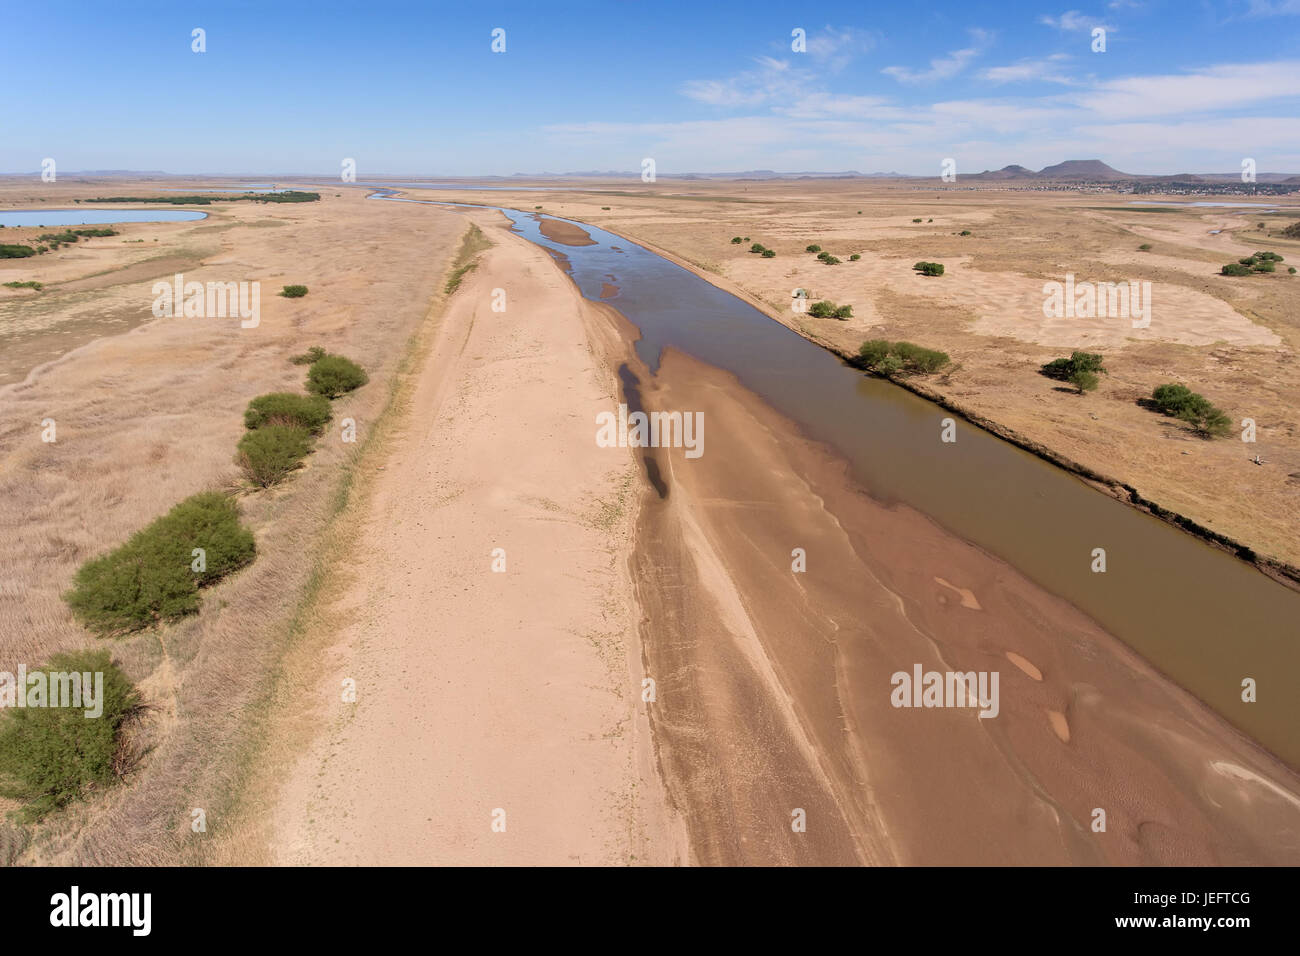 Aerial view of the Caledon river during the dry season, South Africa - Stock Image